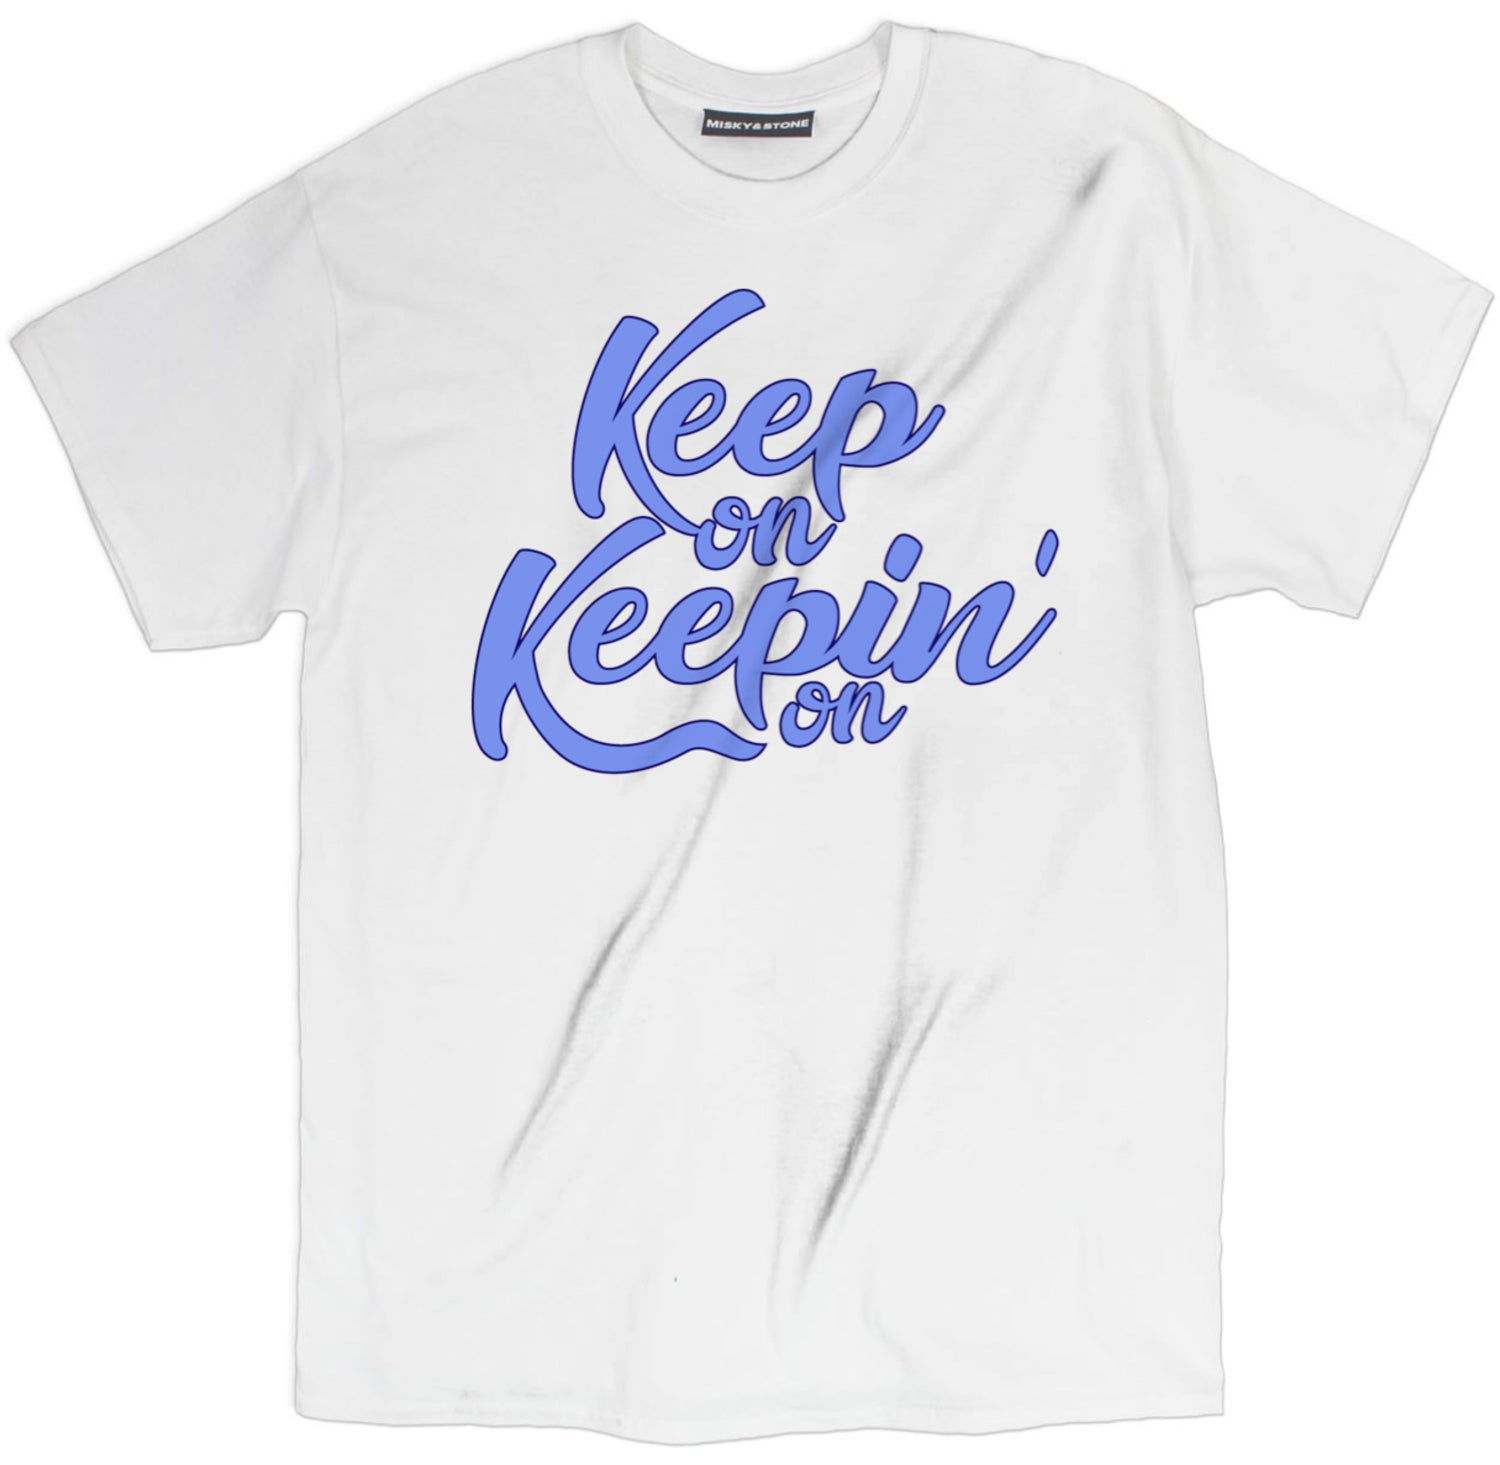 Keep On Keeping On Shirt